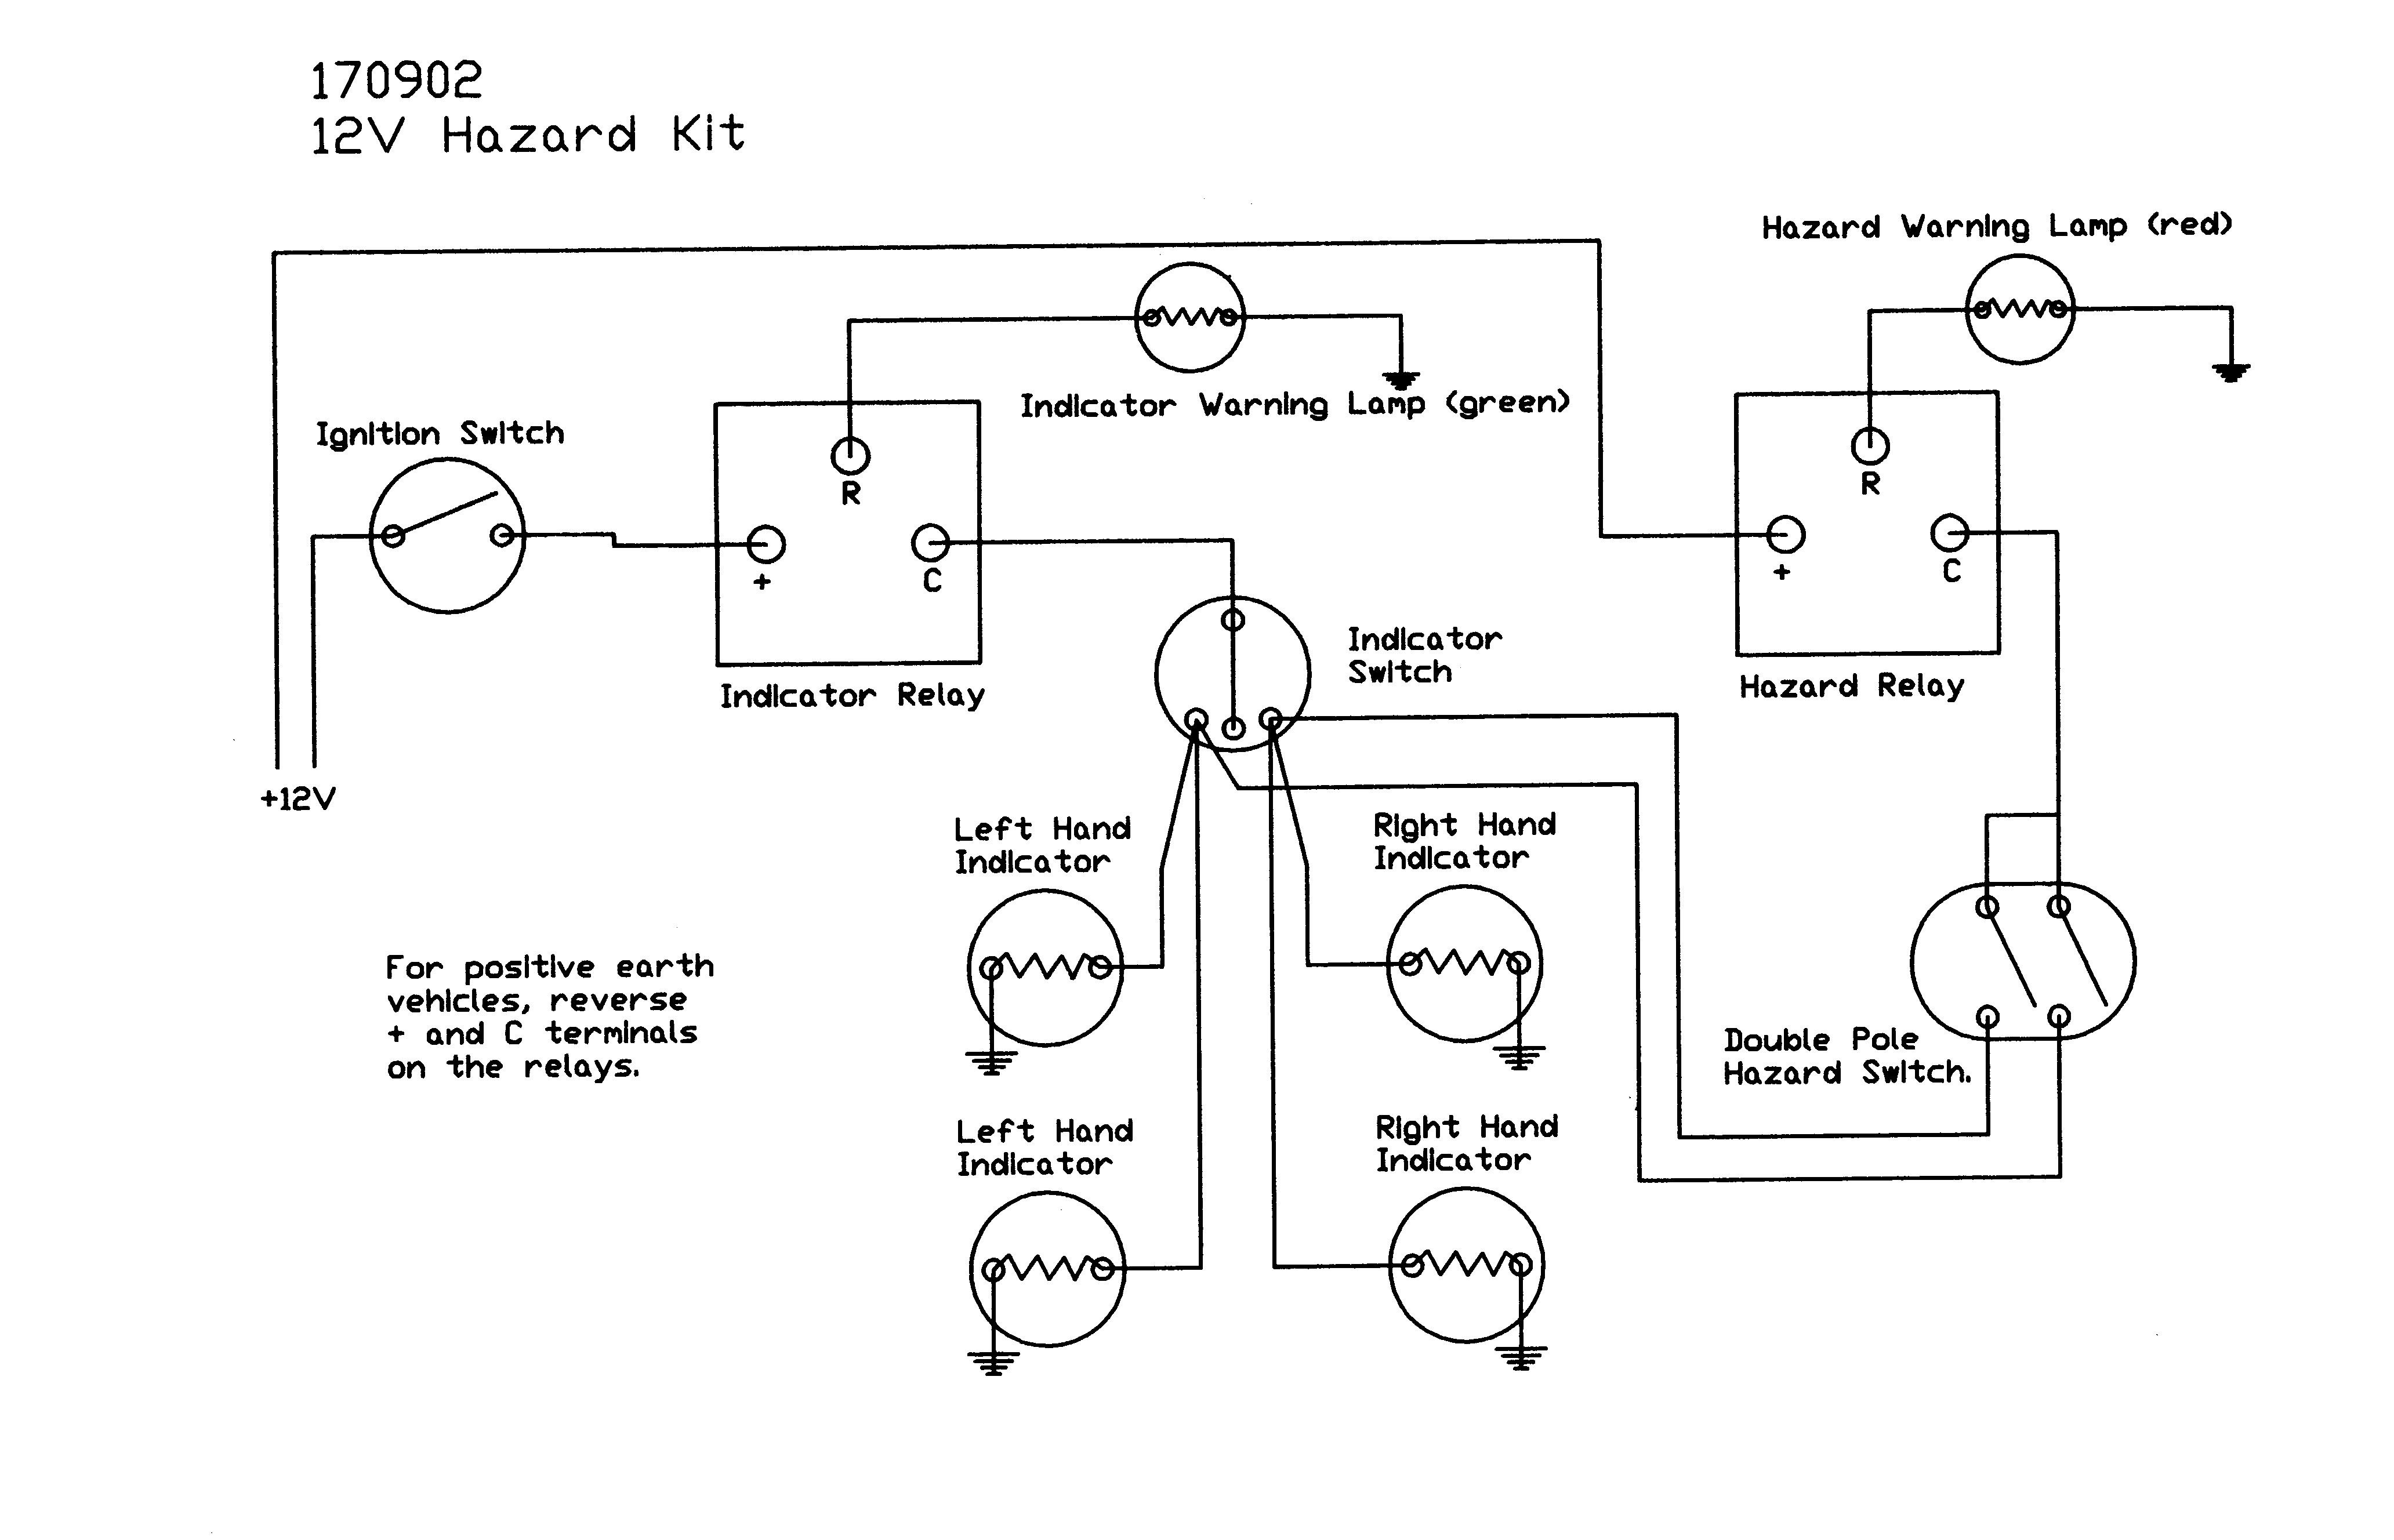 Hazard Switch Kits Understanding Wire Diagrams 170902 Wiring Diagram